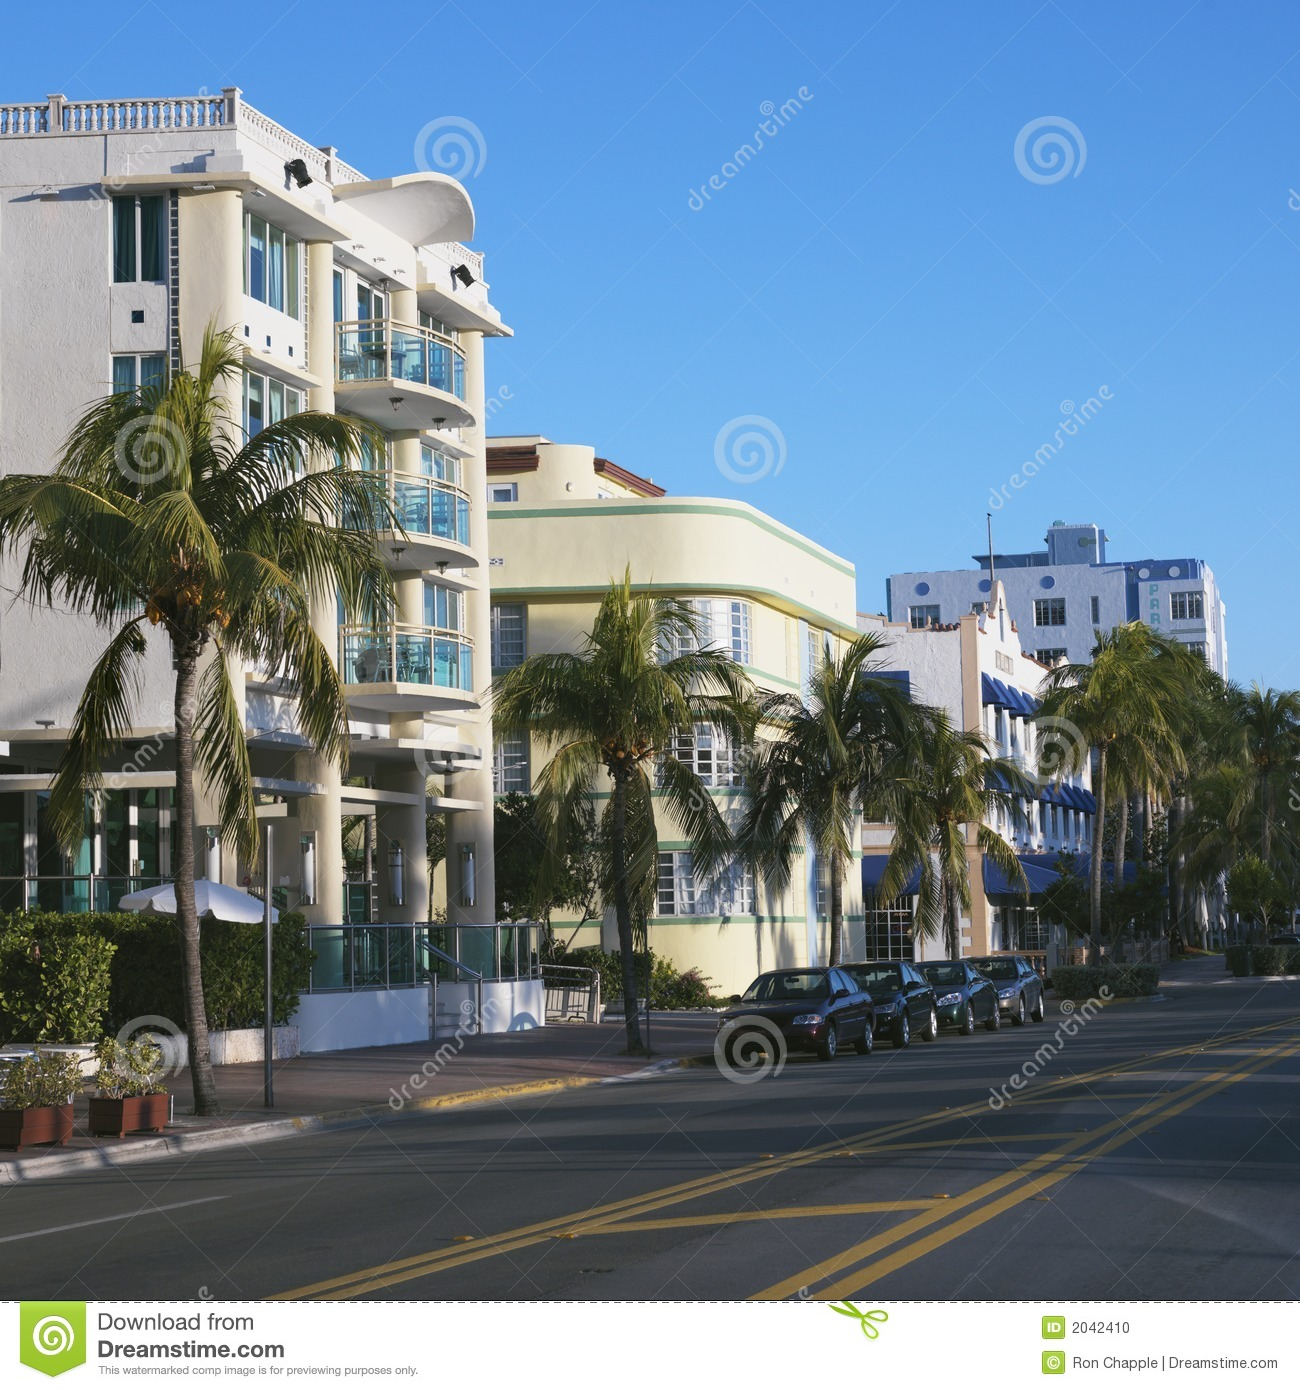 What Time Is It In Miami Beach Fl